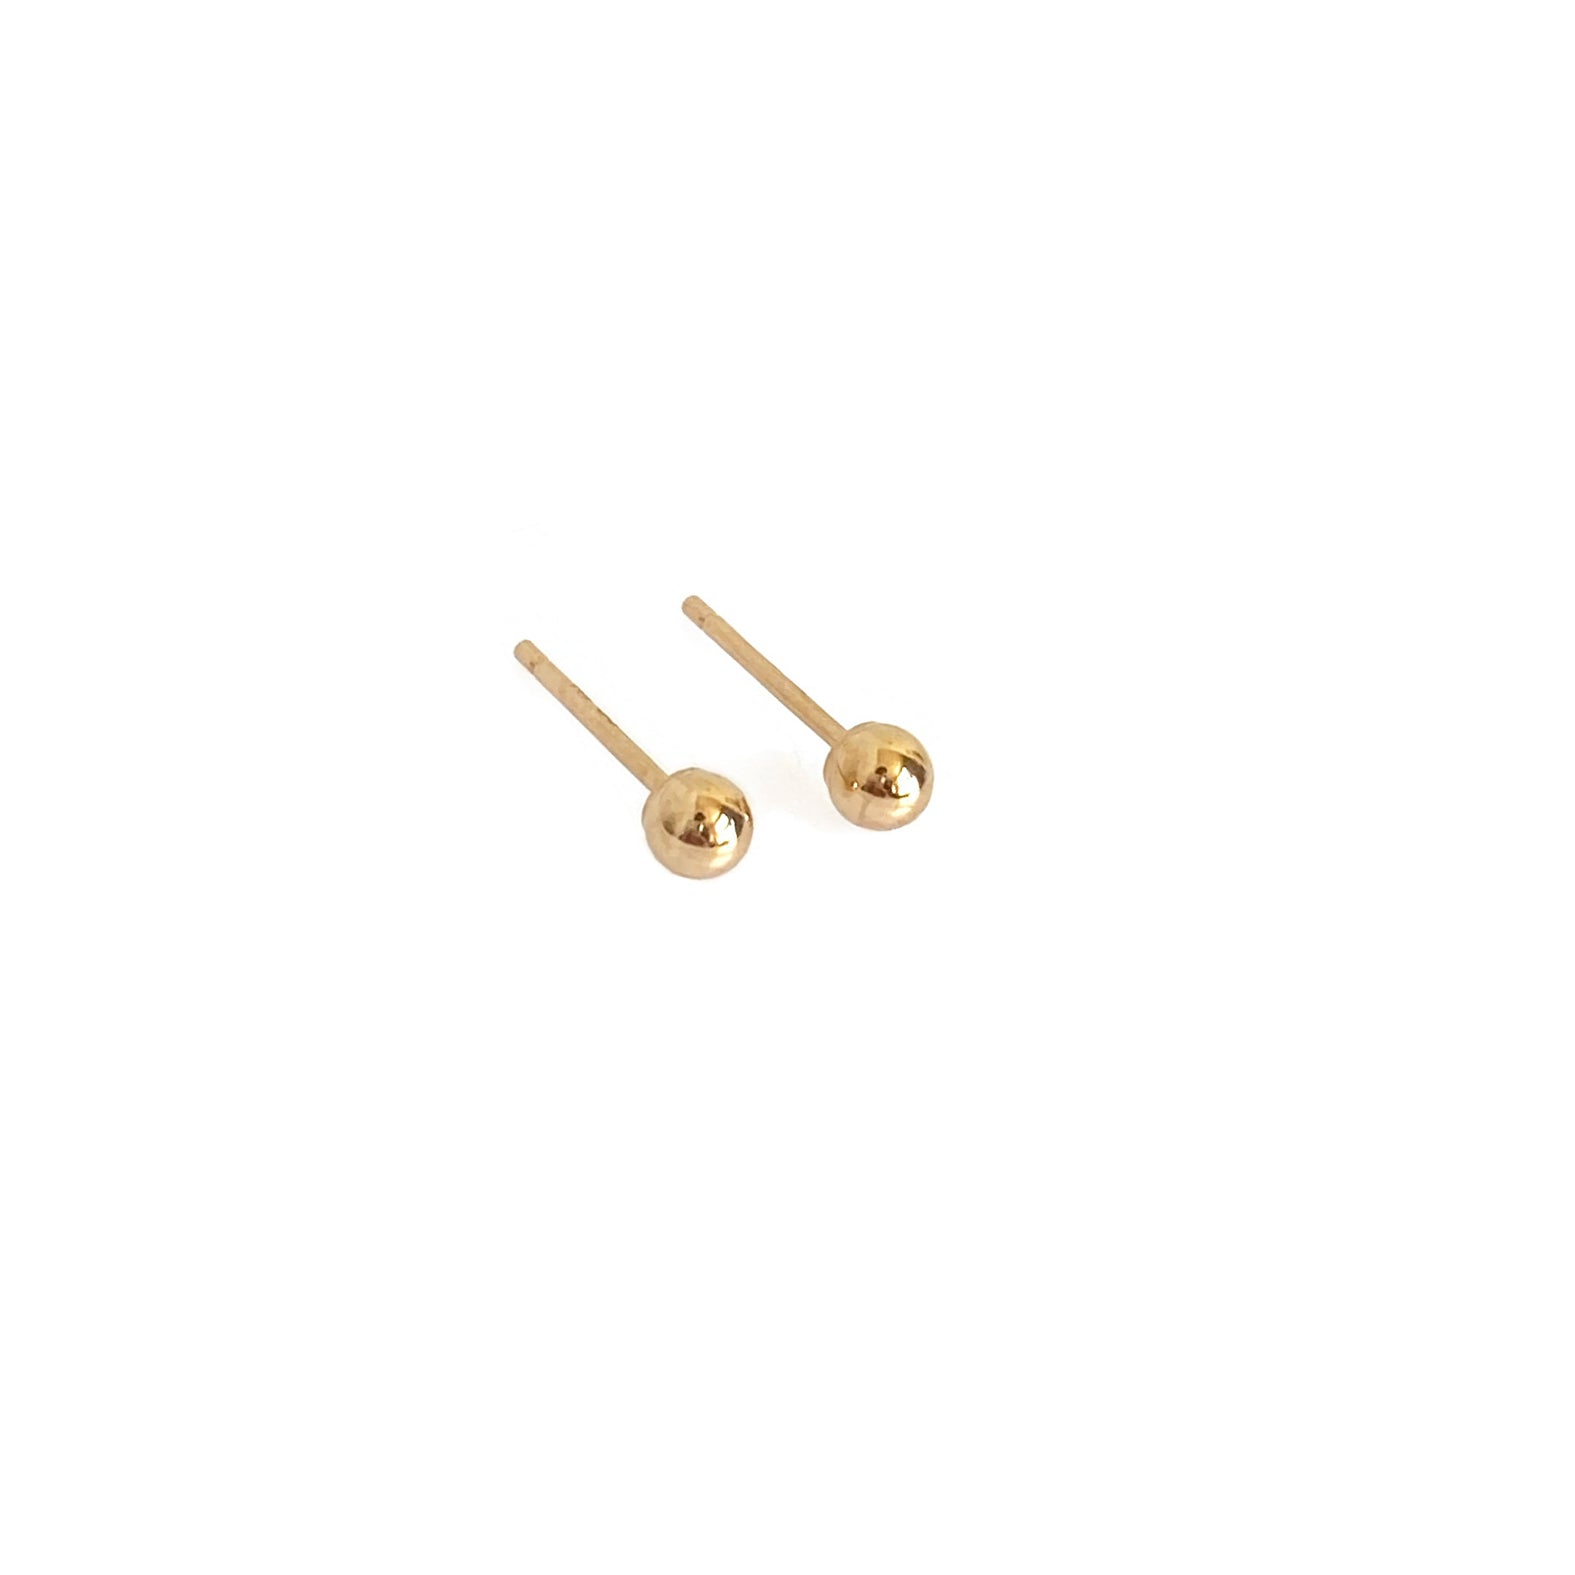 14k gold ball studs are great for people who have sensitive skin